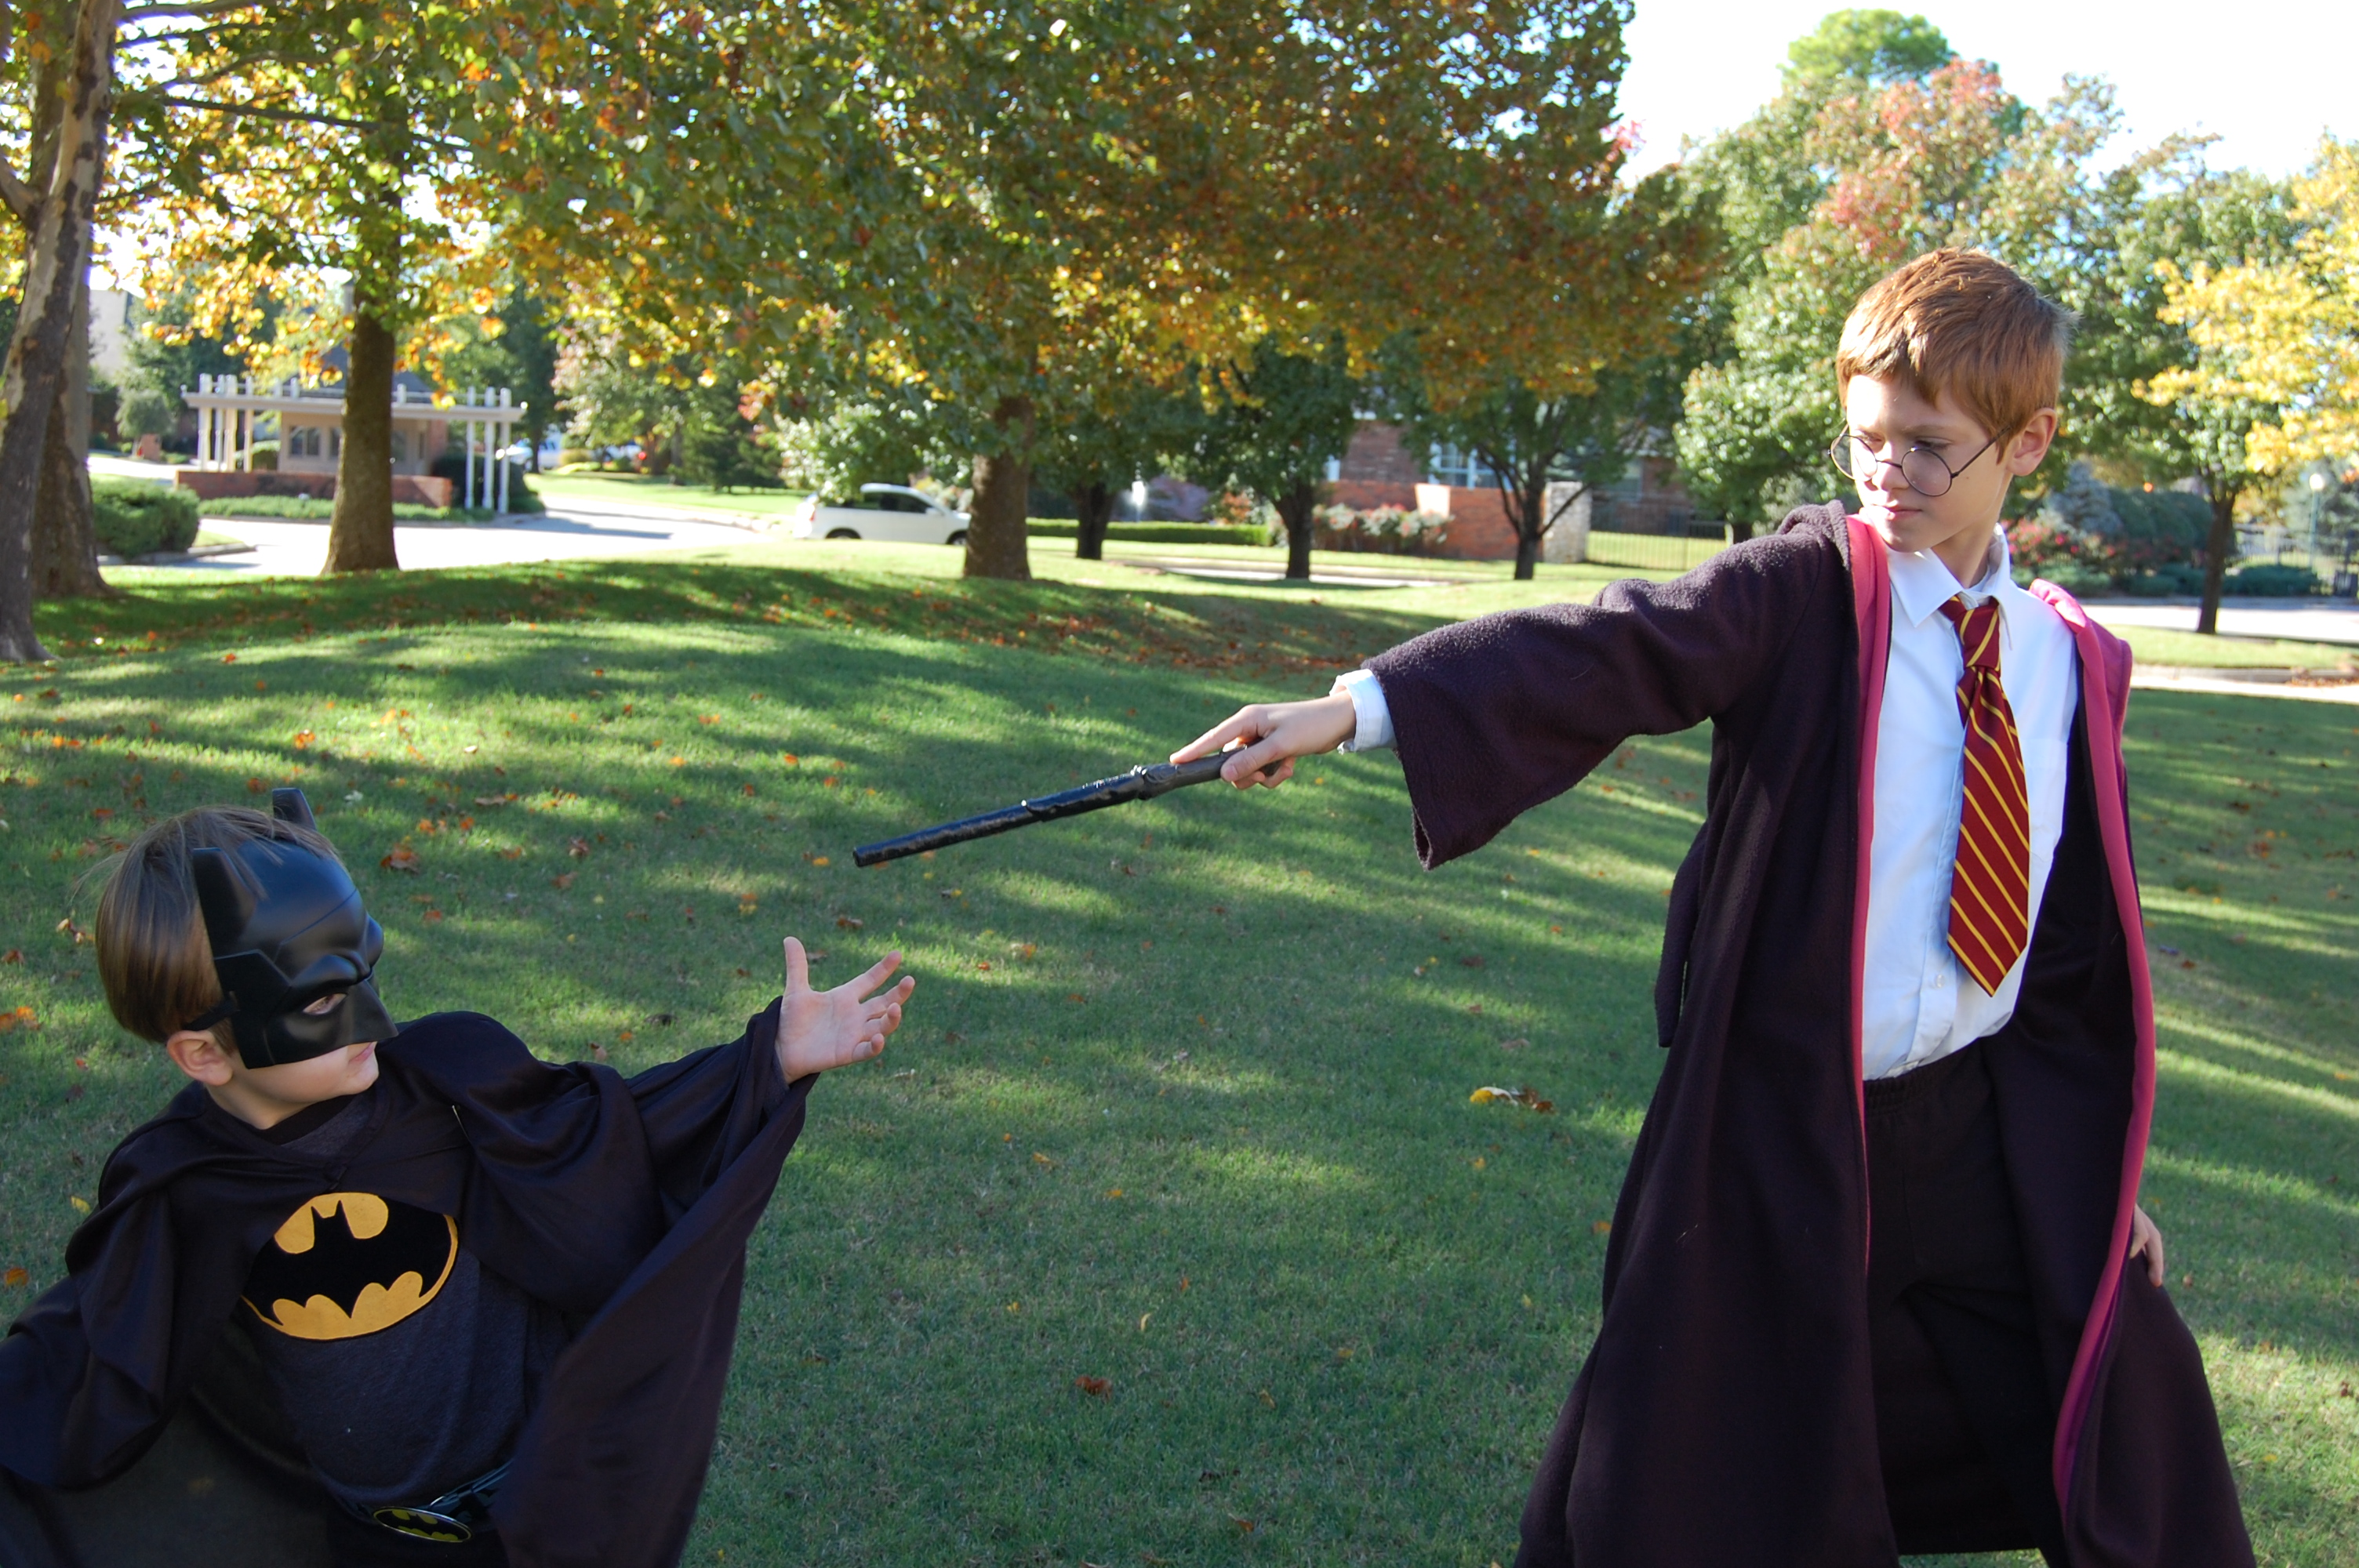 Bat Man and Harry Potter Halloween costumes